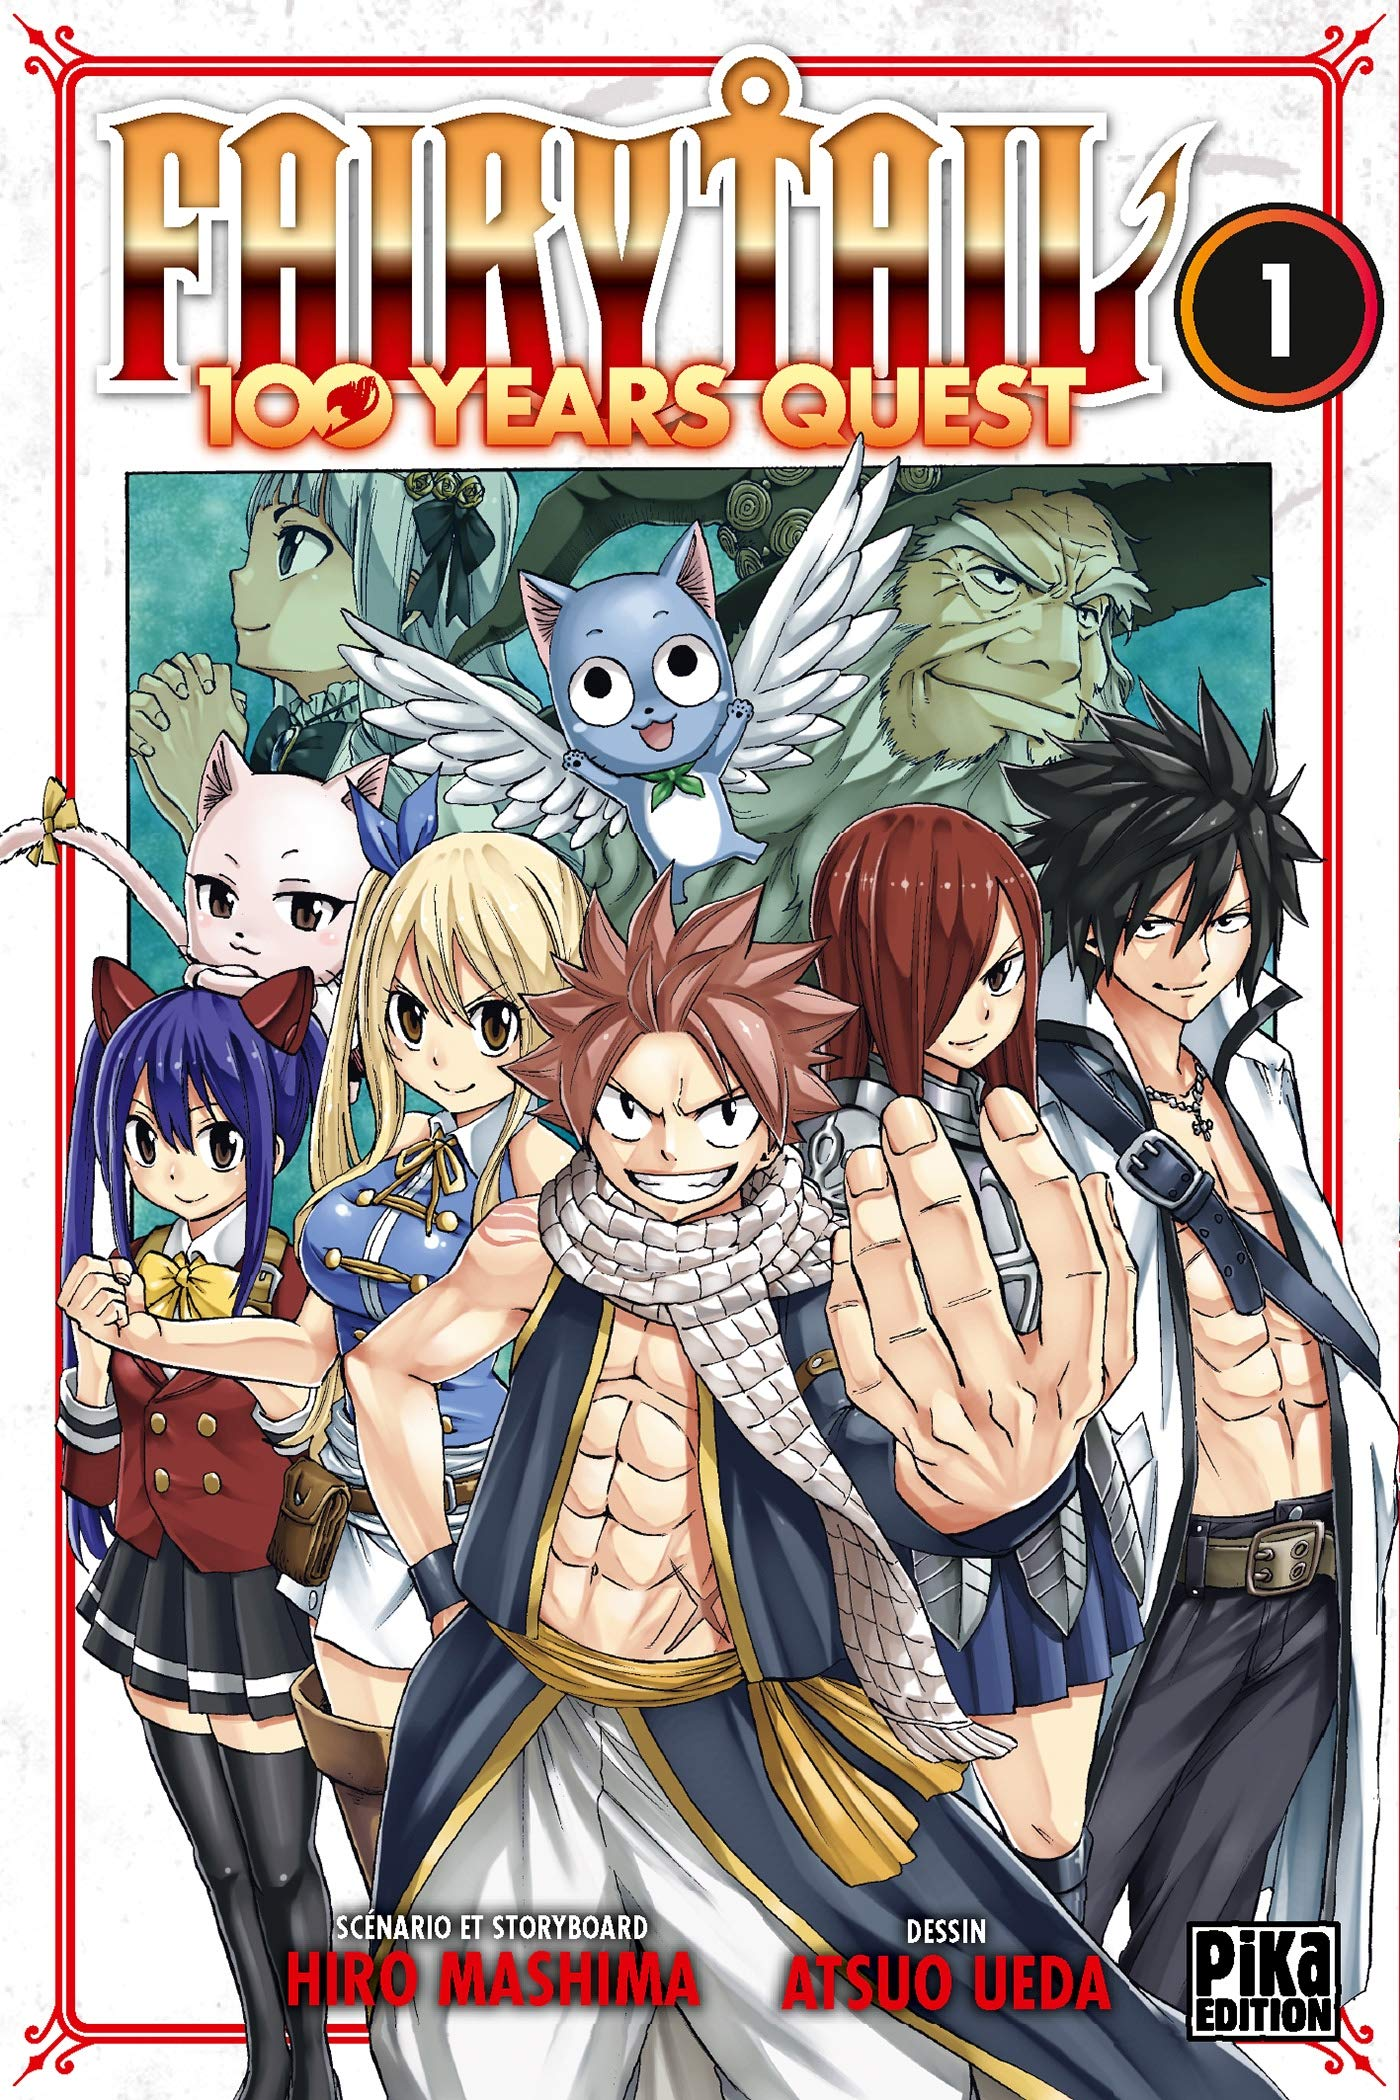 L'adaptation en anime de Fairy Tail comptera un total de 328 épisodes